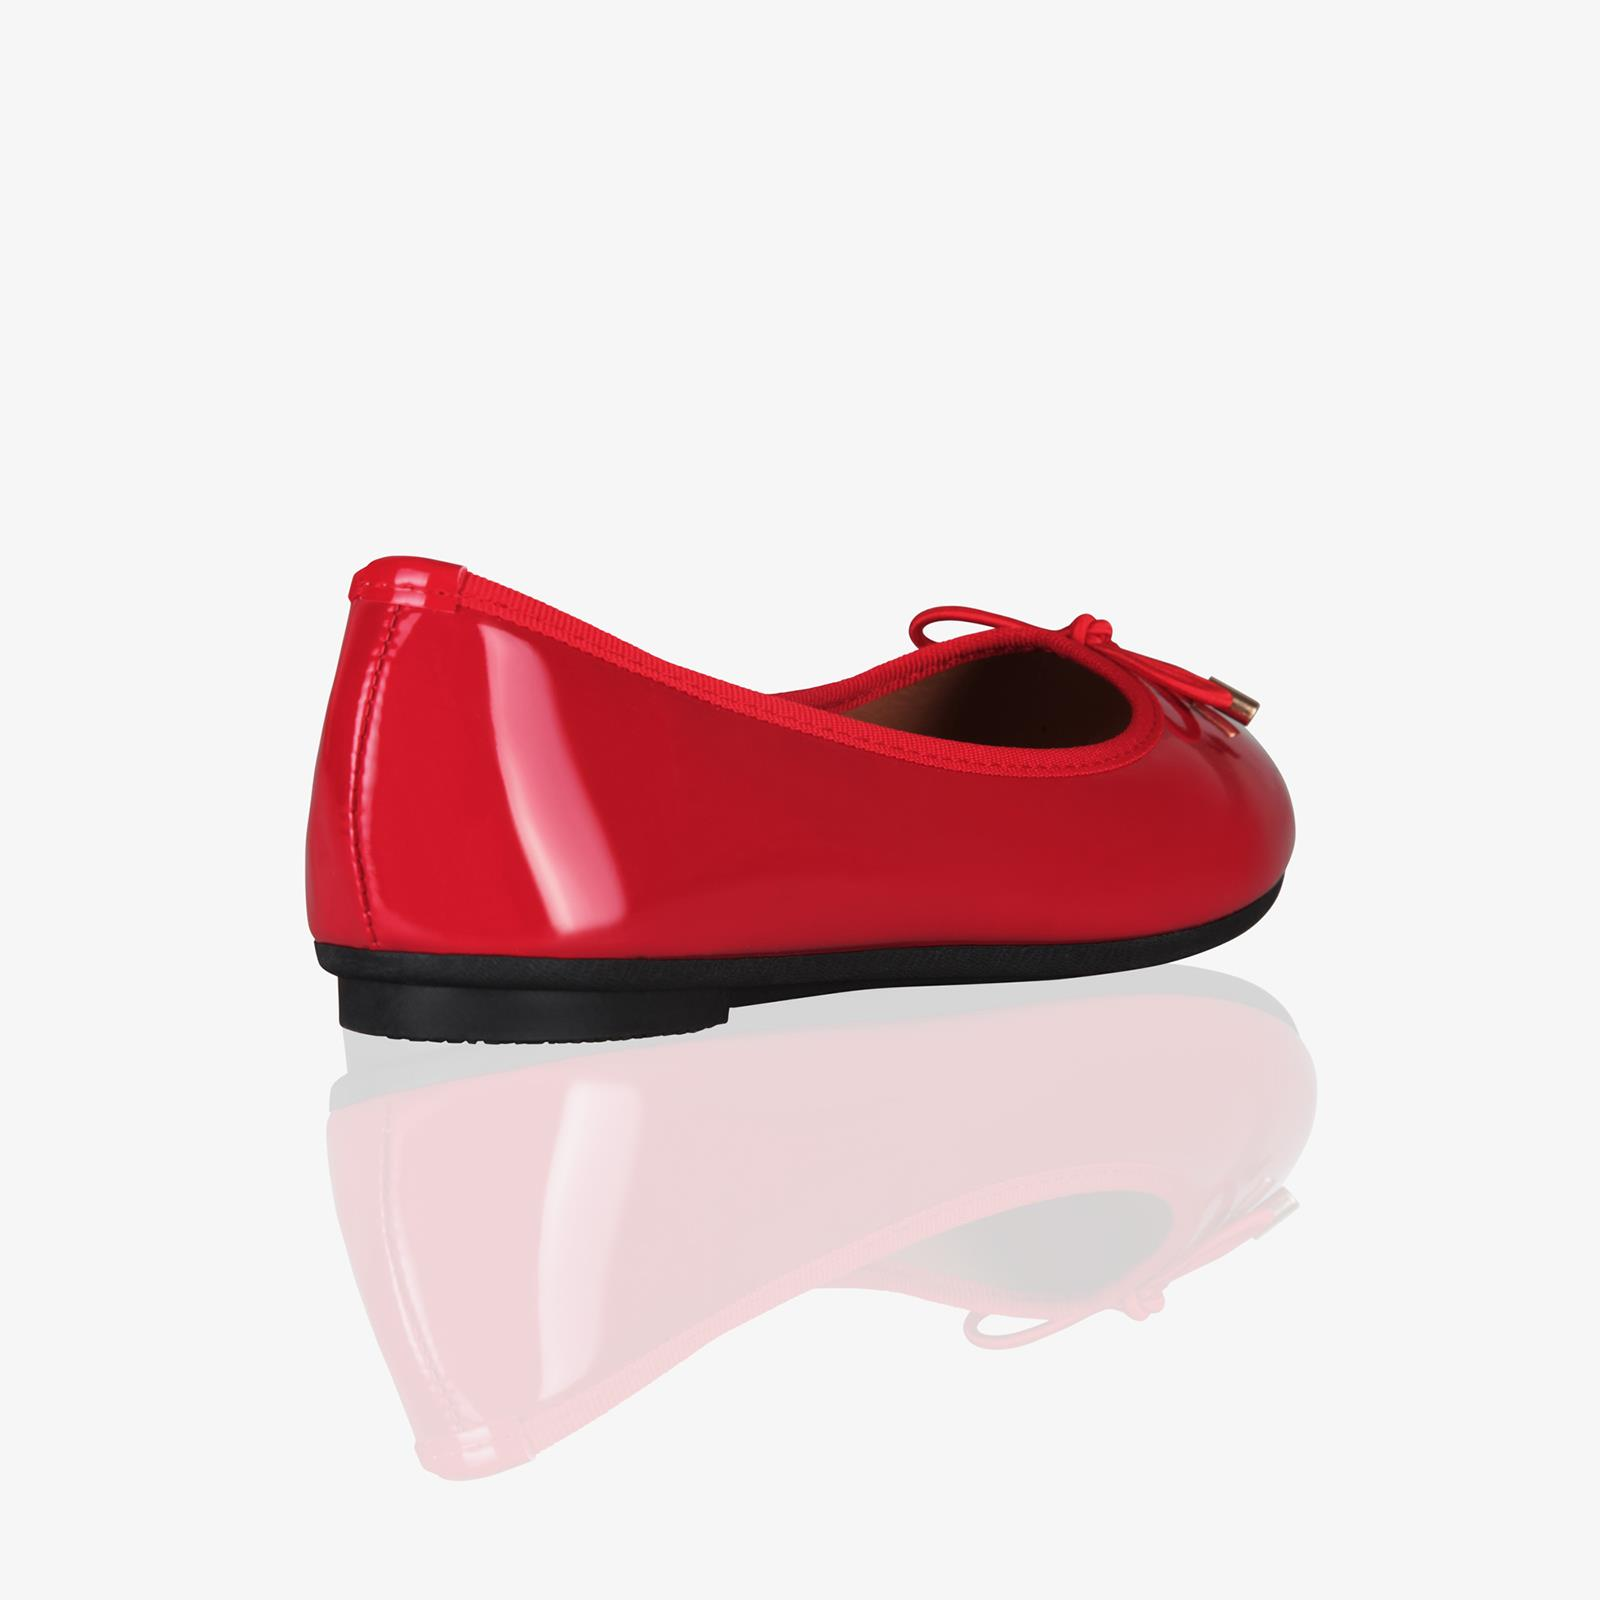 Womens-Ladies-Patent-Flat-Shoes-Ballerina-Ballet-Dolly-Court-Pumps-Slip-On-Bow thumbnail 13